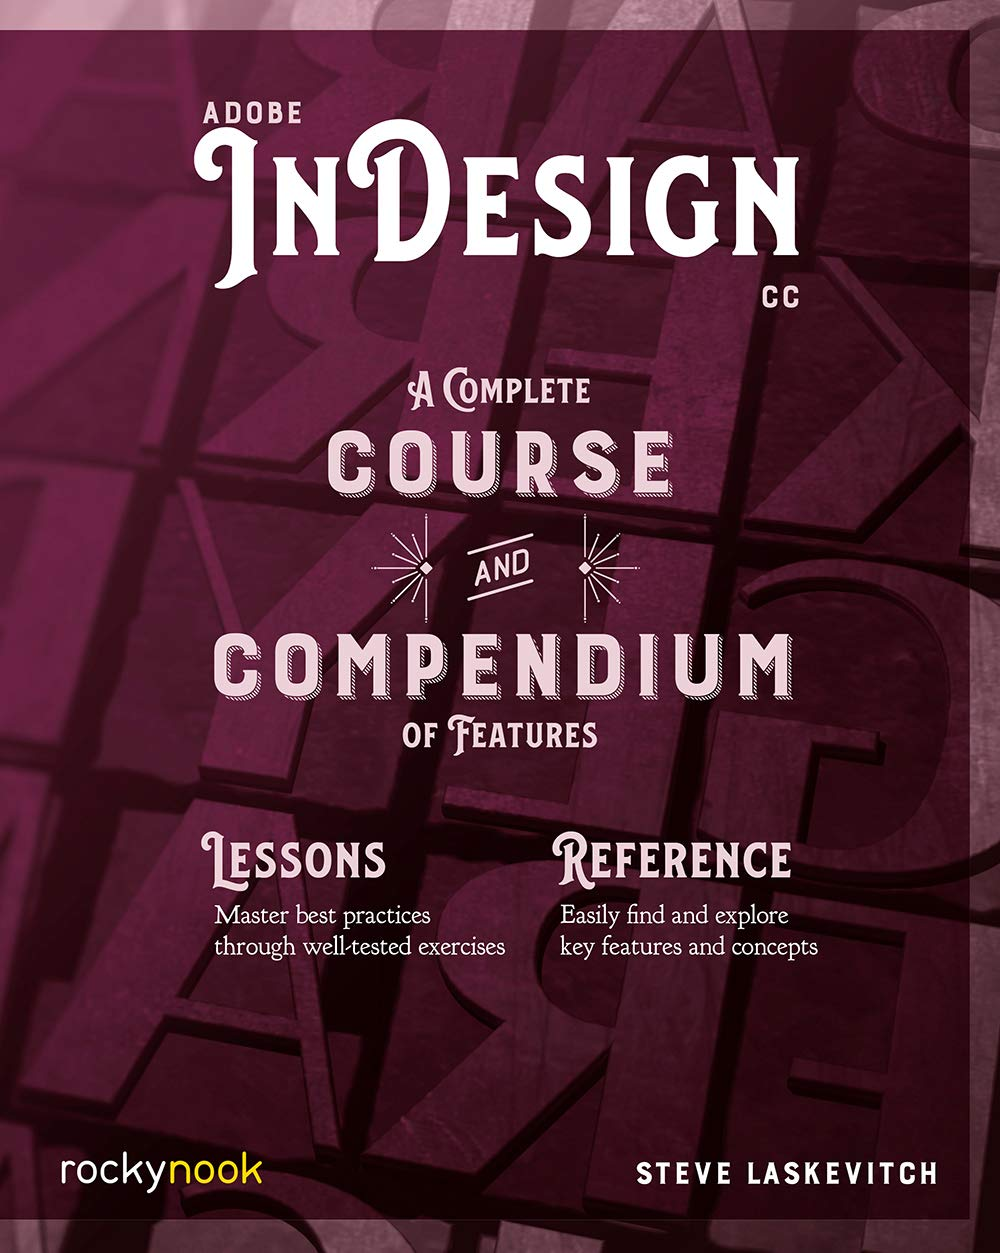 Adobe InDesign CC  A Complete Course And Compendium Of Features